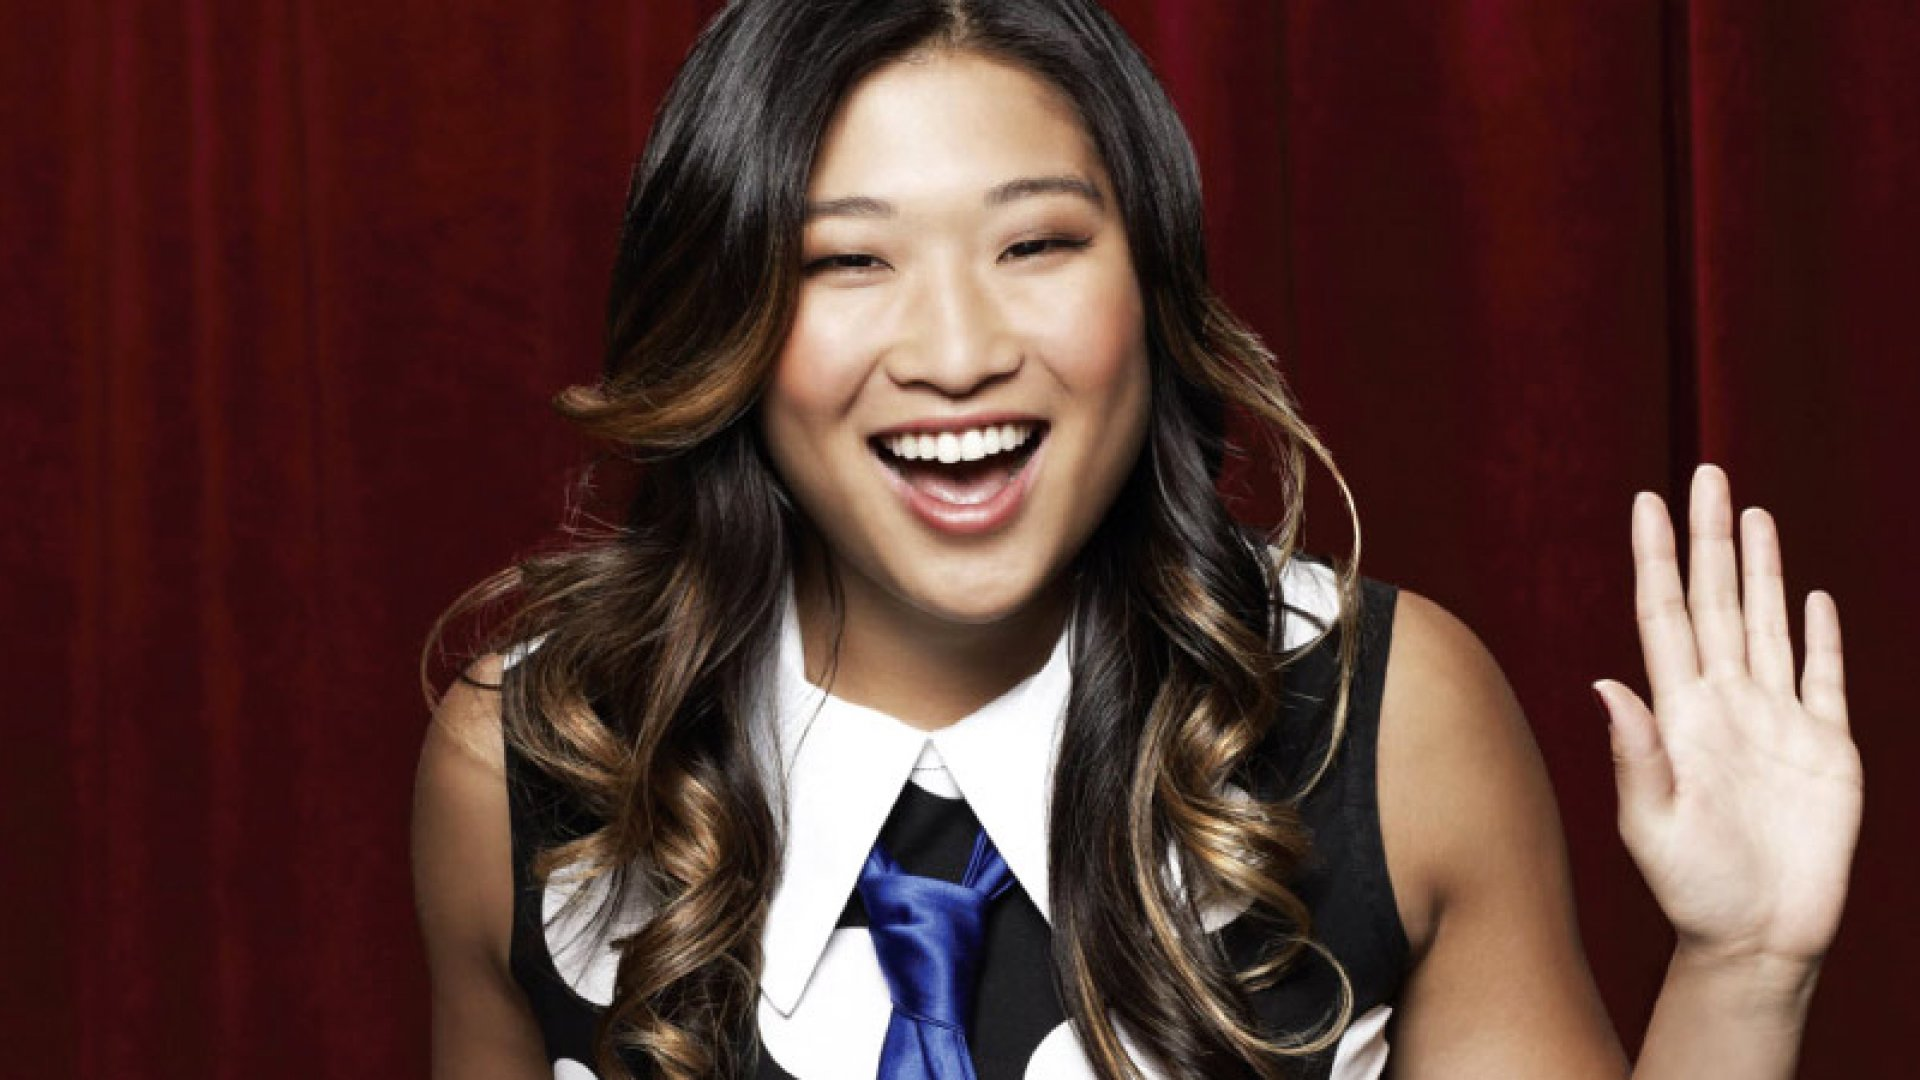 'Glee' Star Jenna Ushkowitz Shares 12 Things Millennials Can Do to Make Their Life Amazing